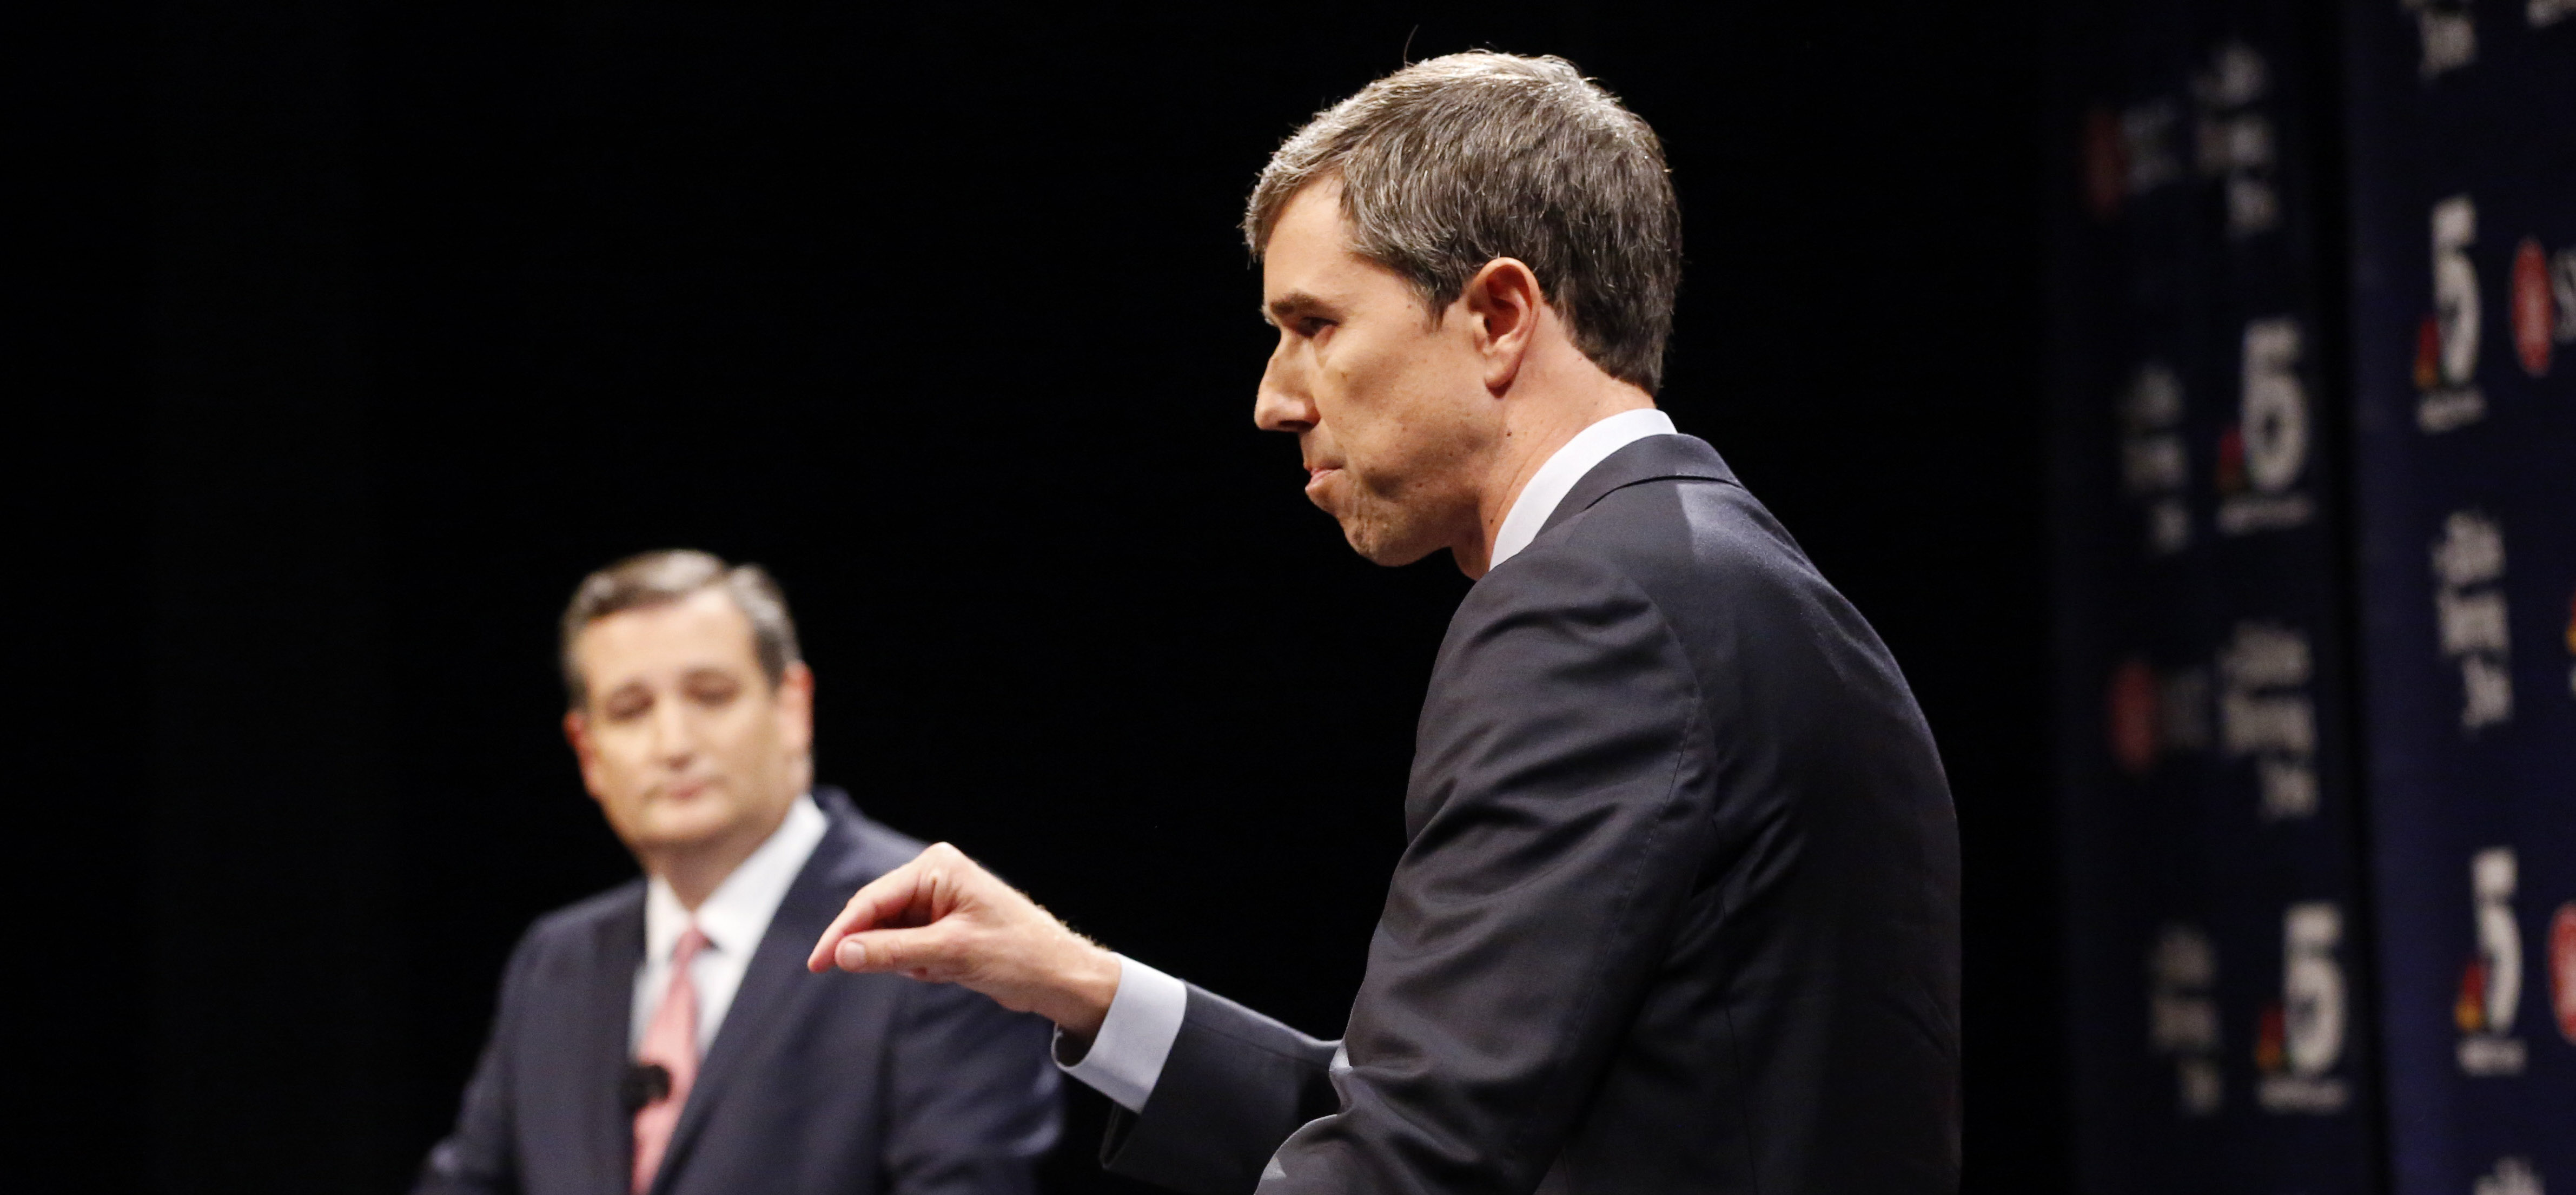 Ted Cruz vs. Beto O'Rourke: Where the Candidates Stand on the Issues That Matter Most to Latinos